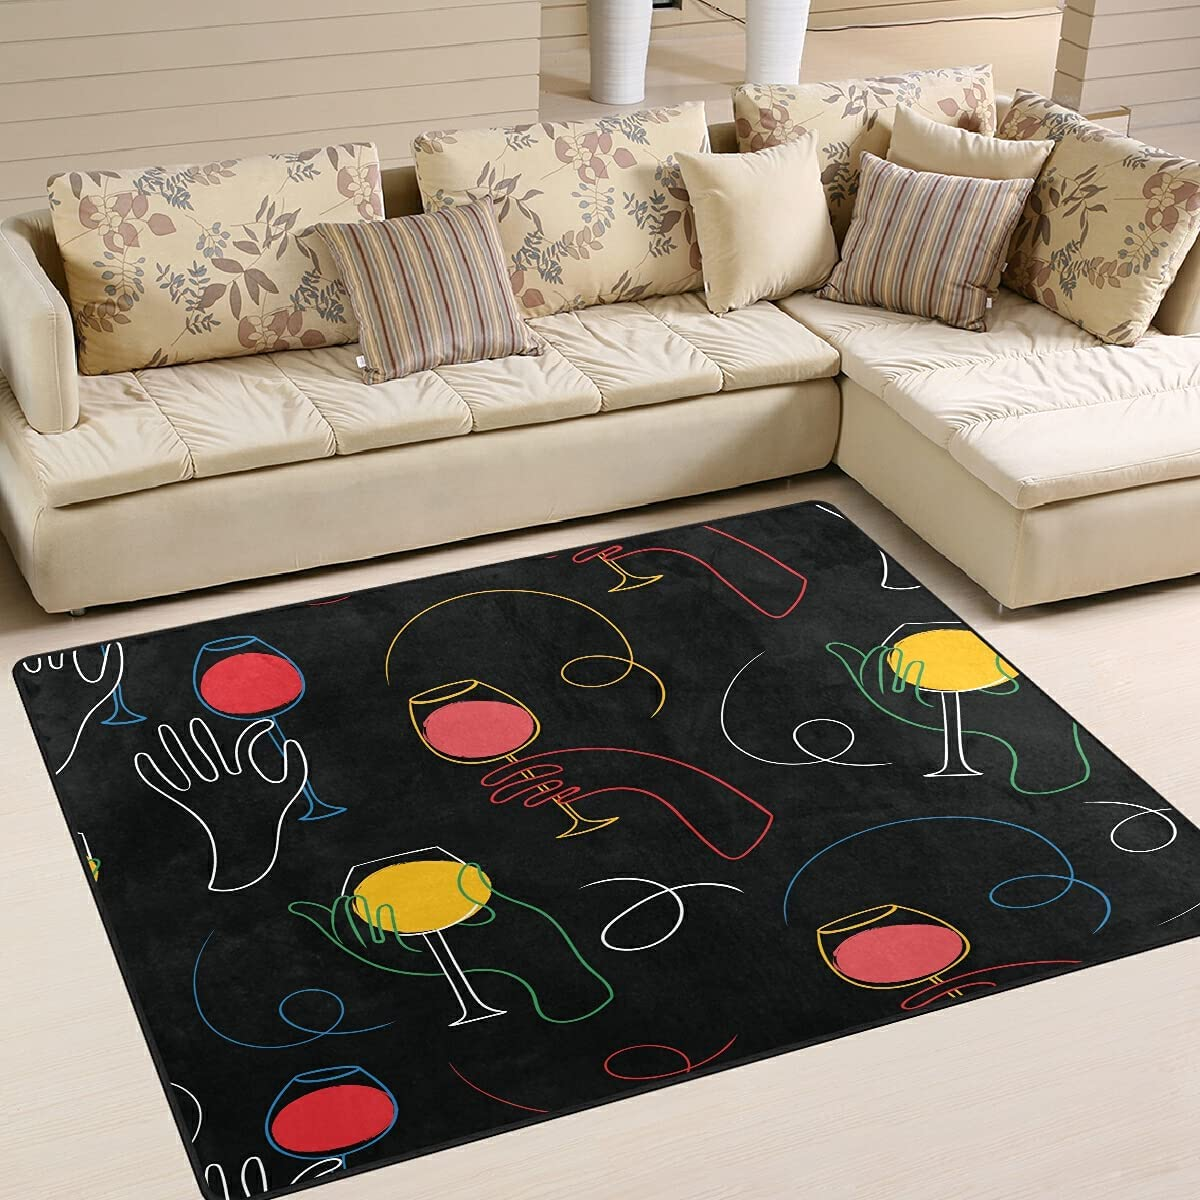 Overseas parallel import regular item Wine Party Lines Area Rugs Throw Floor Ca Soft Mat Non-Slip Large special price !!